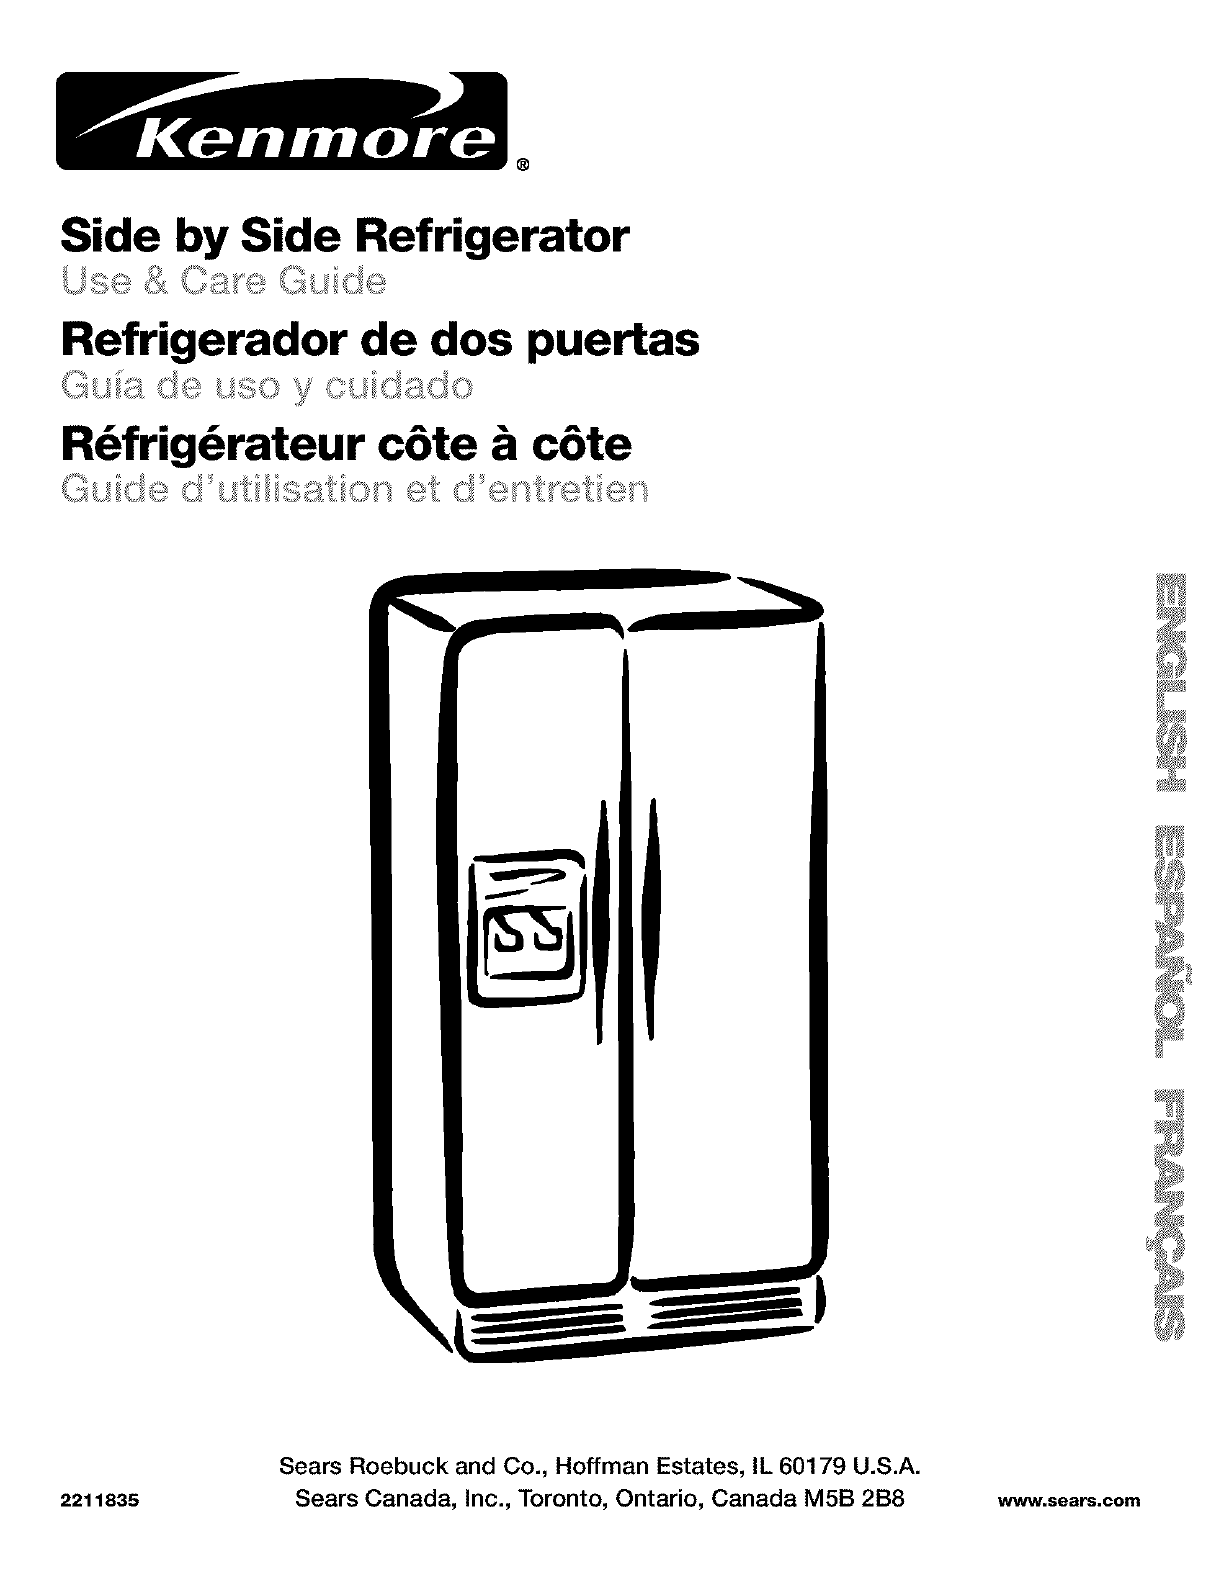 7f7c209c 3a82 4c01 aecb 31a71b630337 bg1 kenmore refrigerator 106 user guide manualsonline com wiring diagram for kenmore elite refrigerator at eliteediting.co